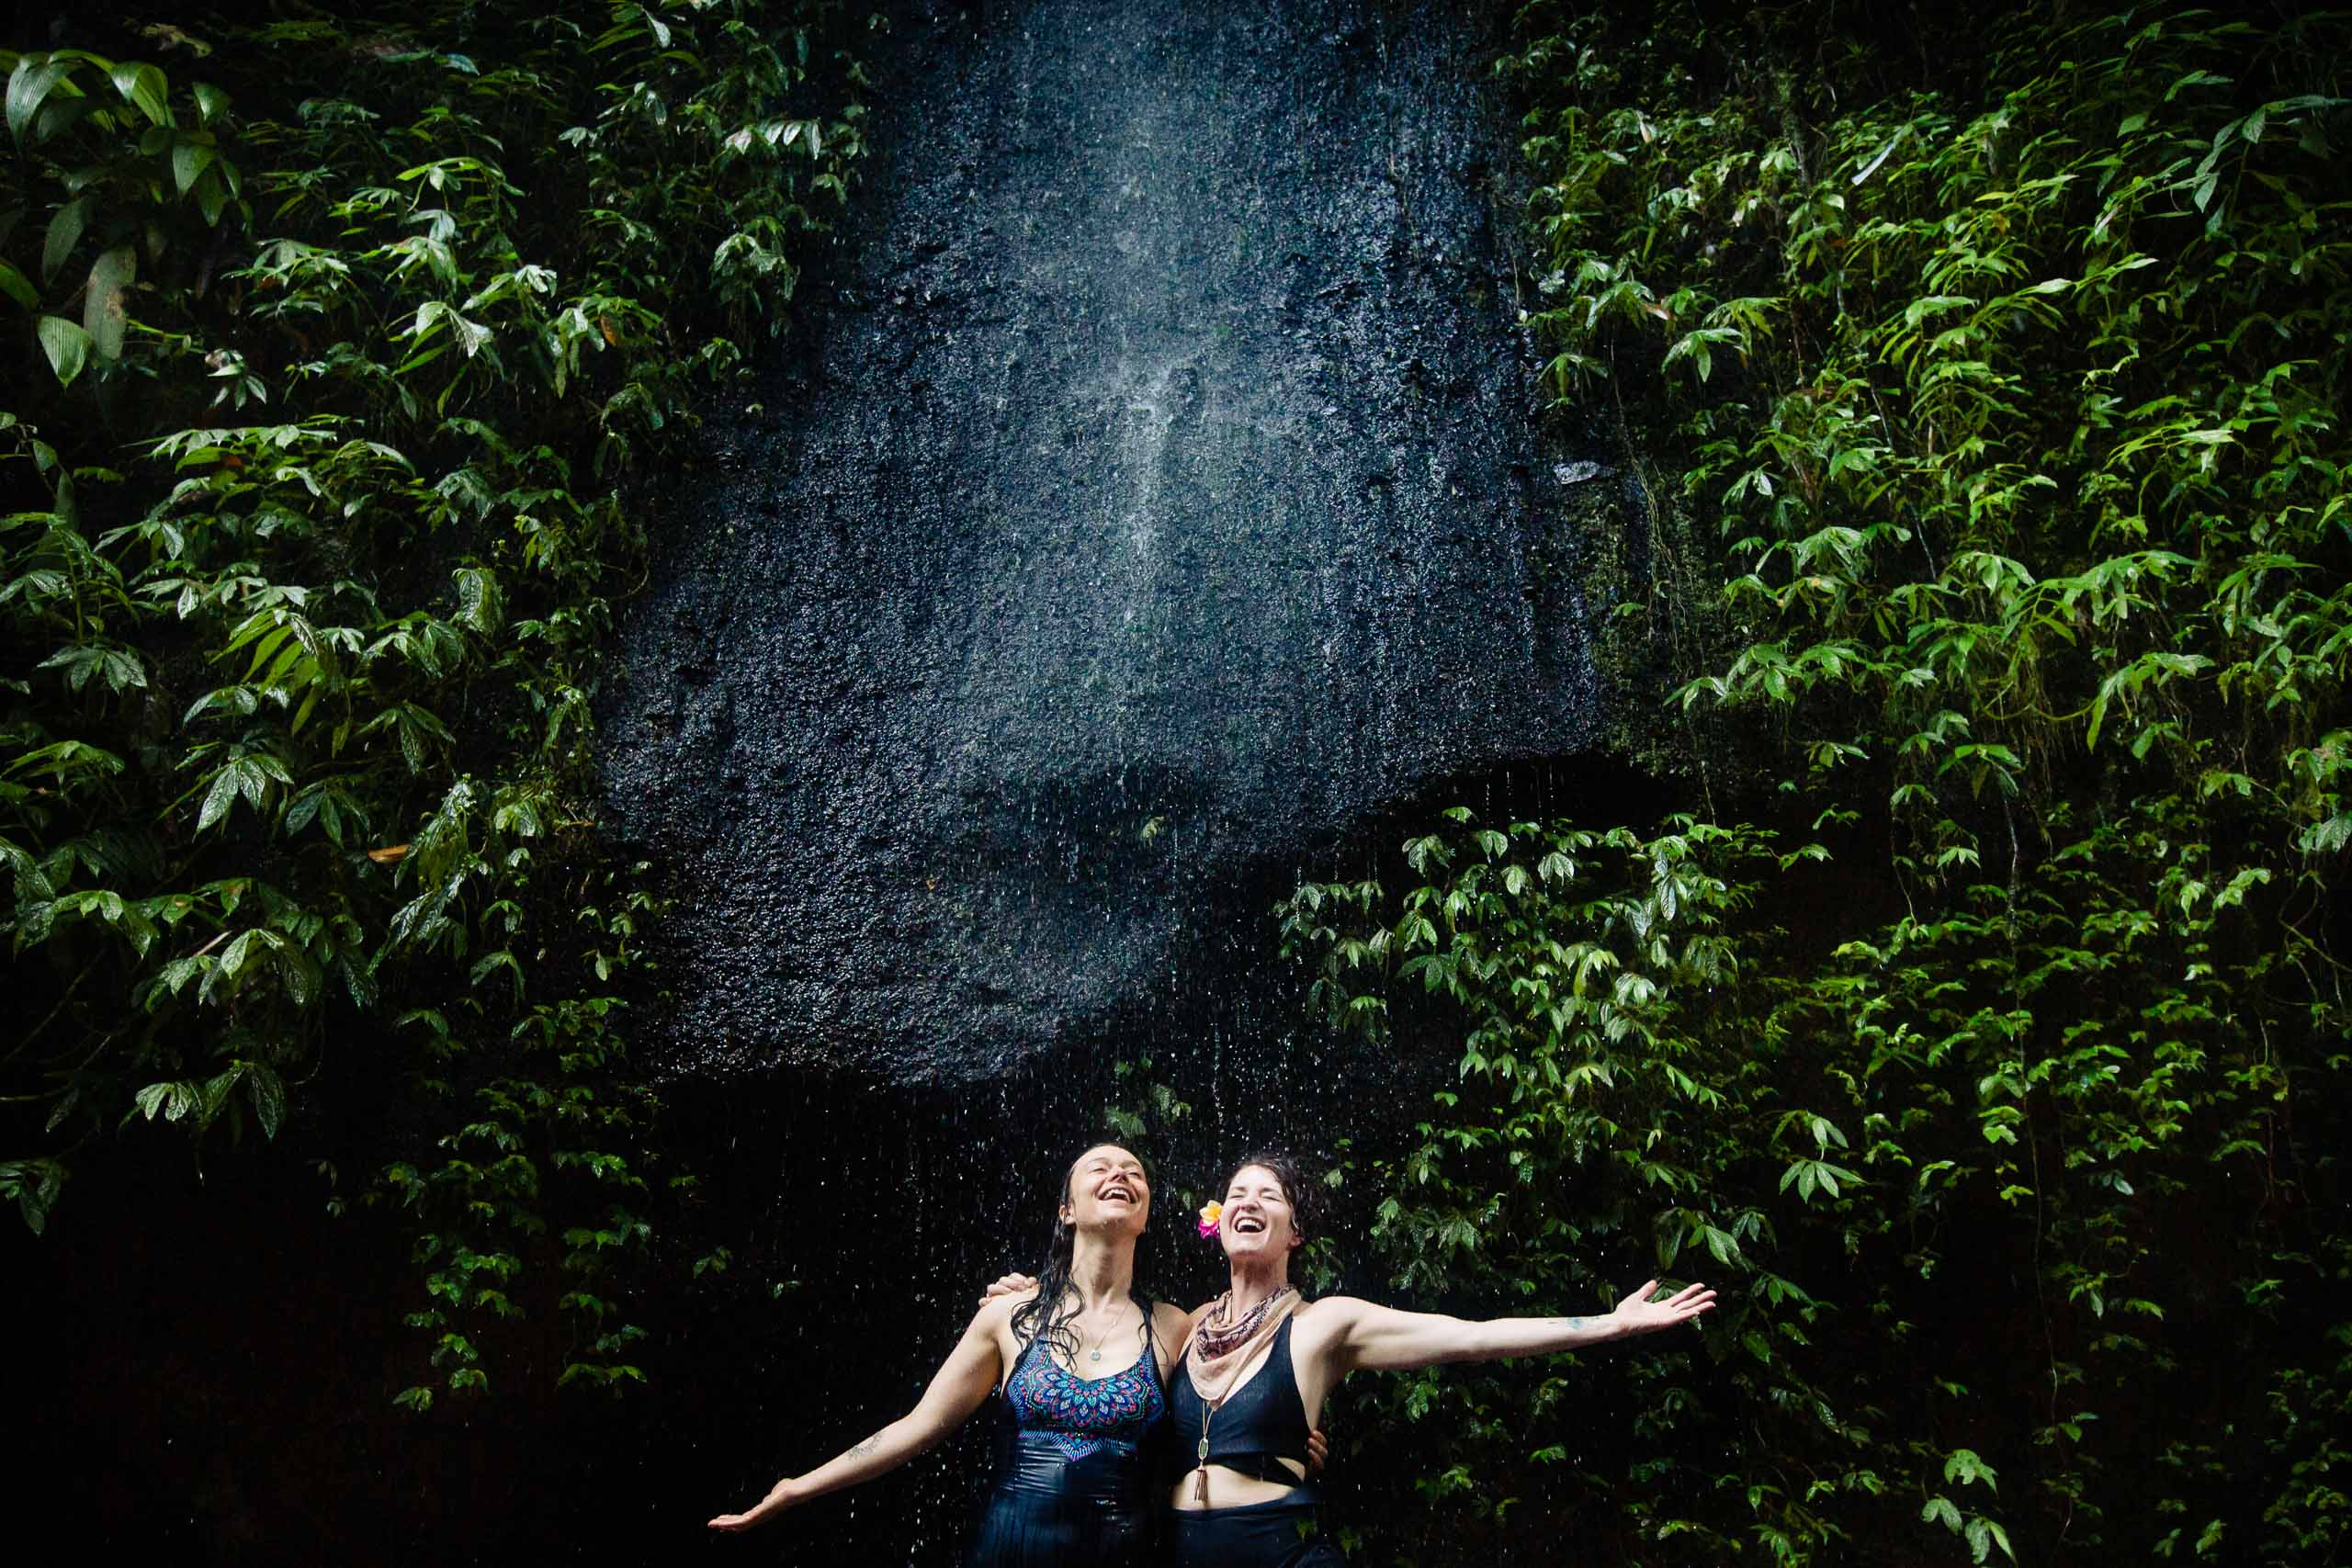 TWO MANN studios reunion in Bali with 25 photographers. Photo of Tree WoodSmith and Abby Taylor in a waterfall in Bali. Photo by josandtree.